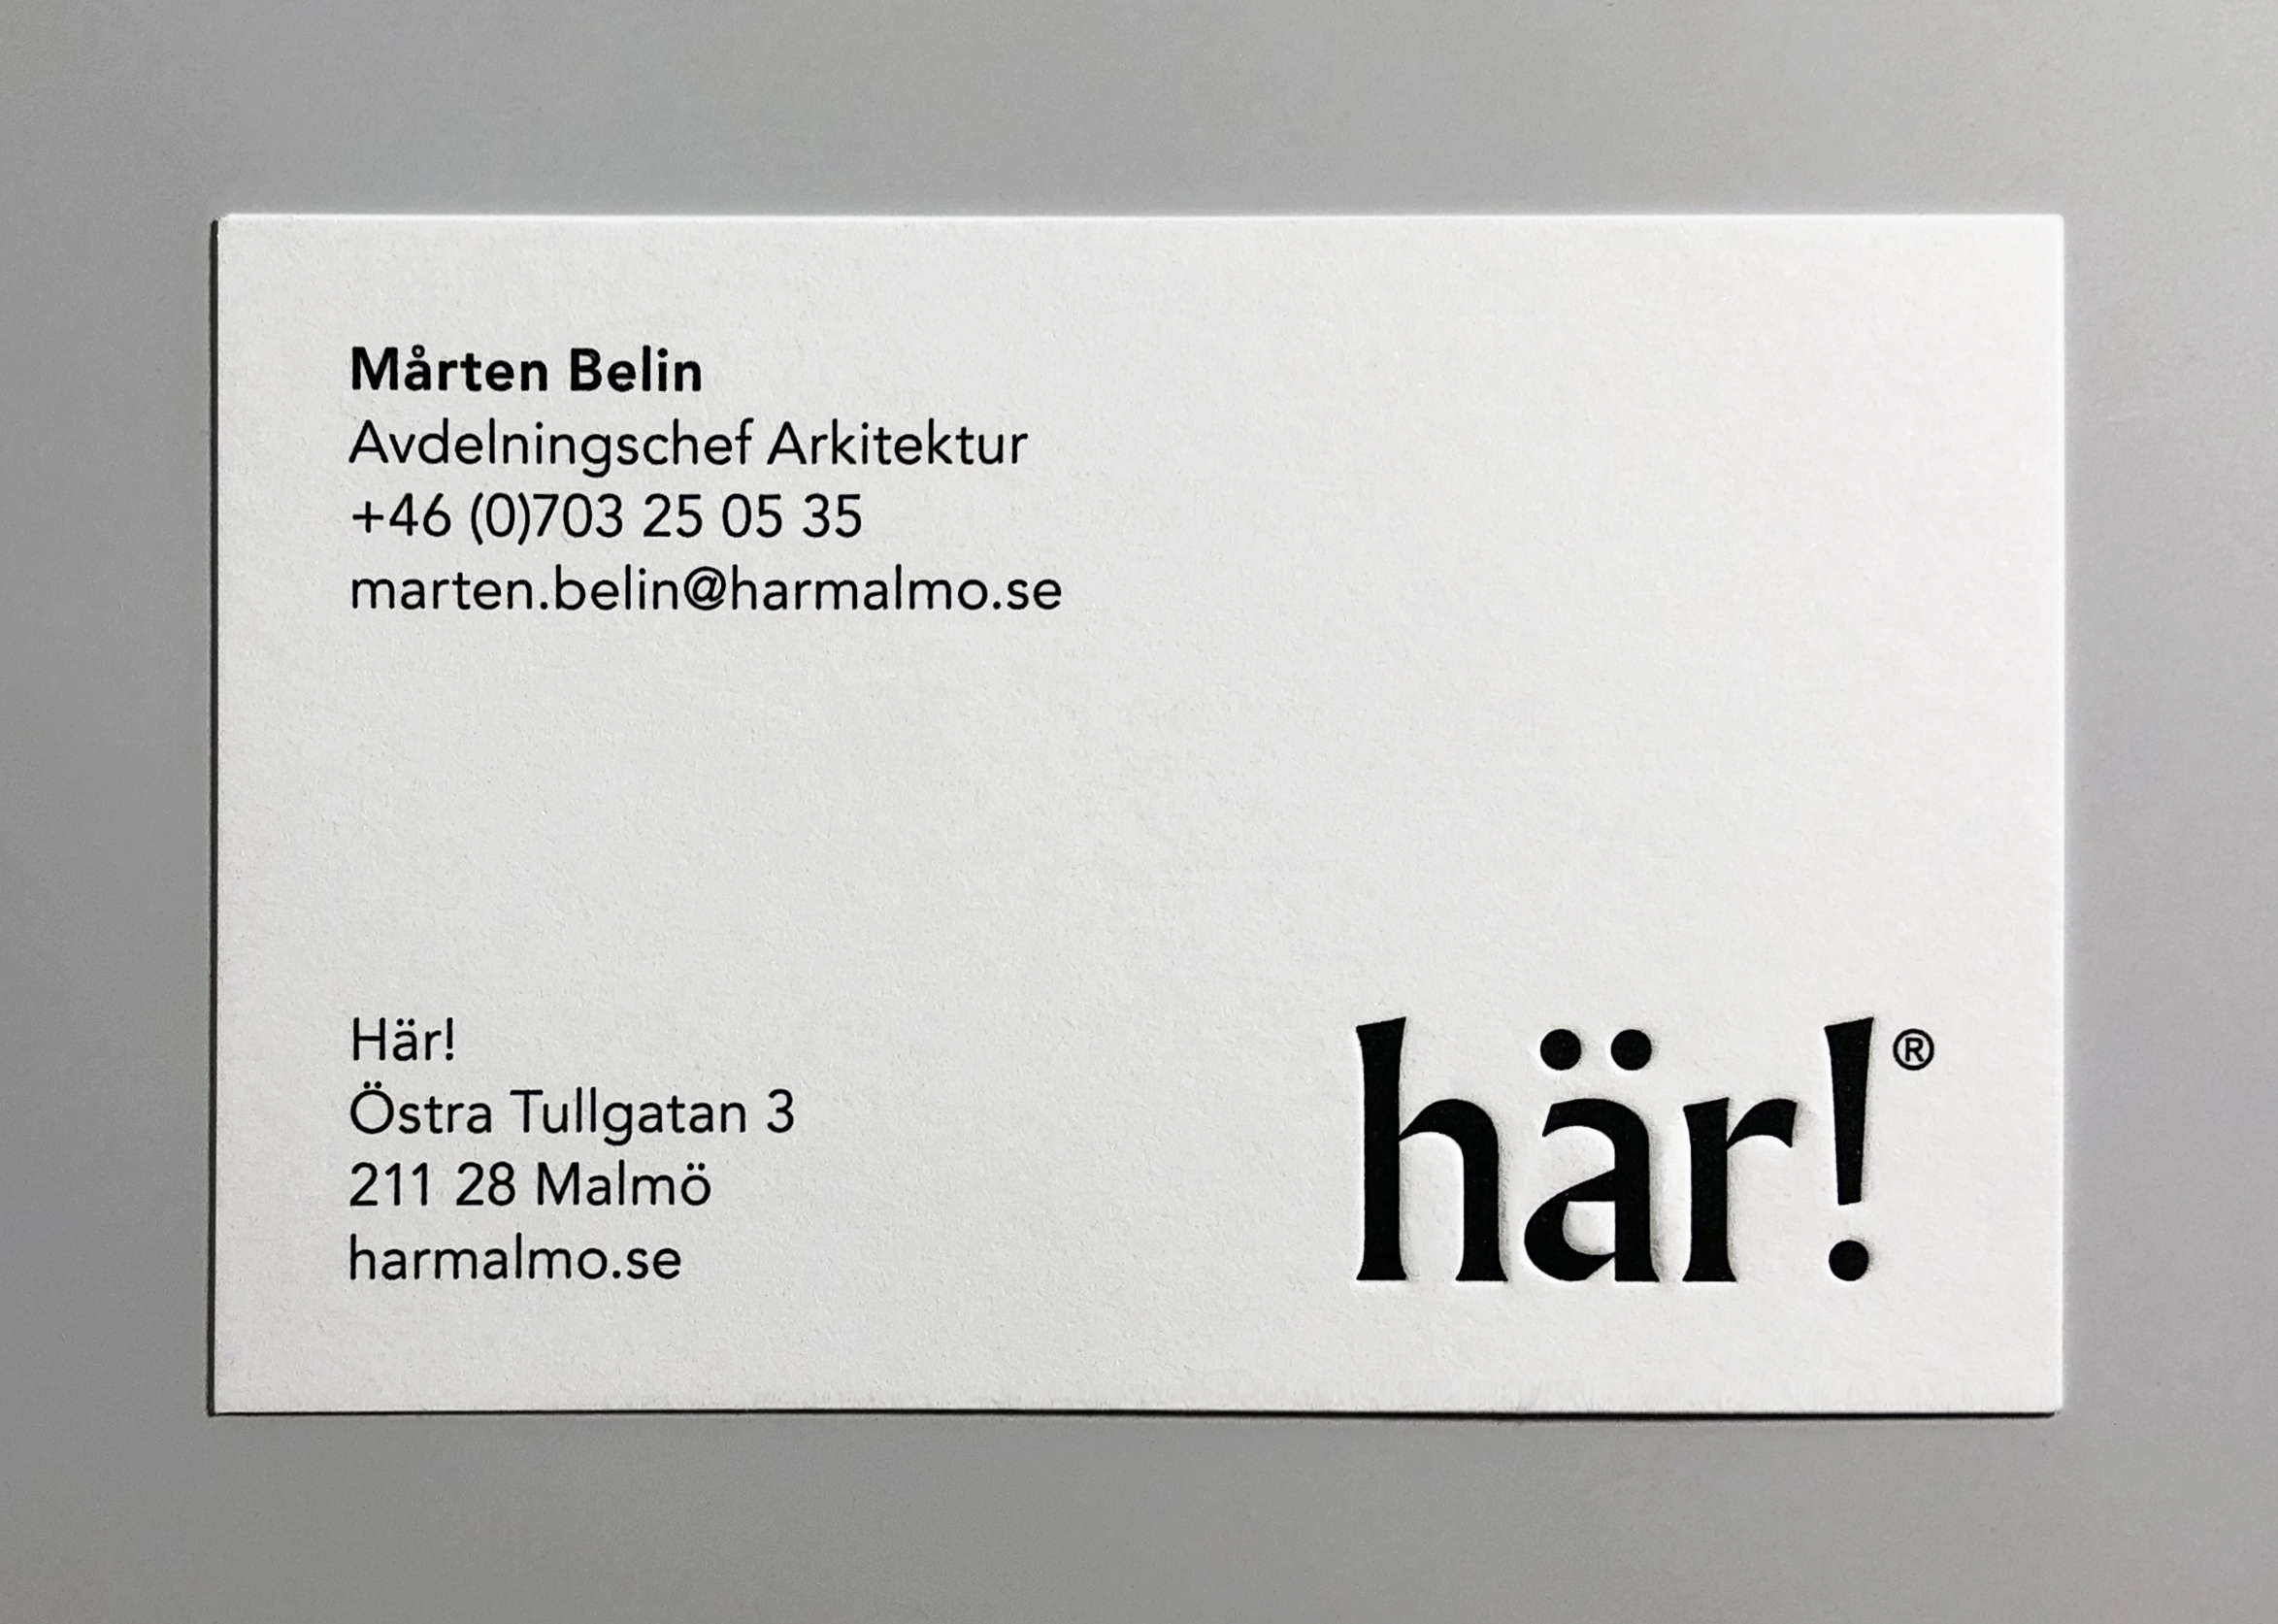 A photo of the Här! business card.